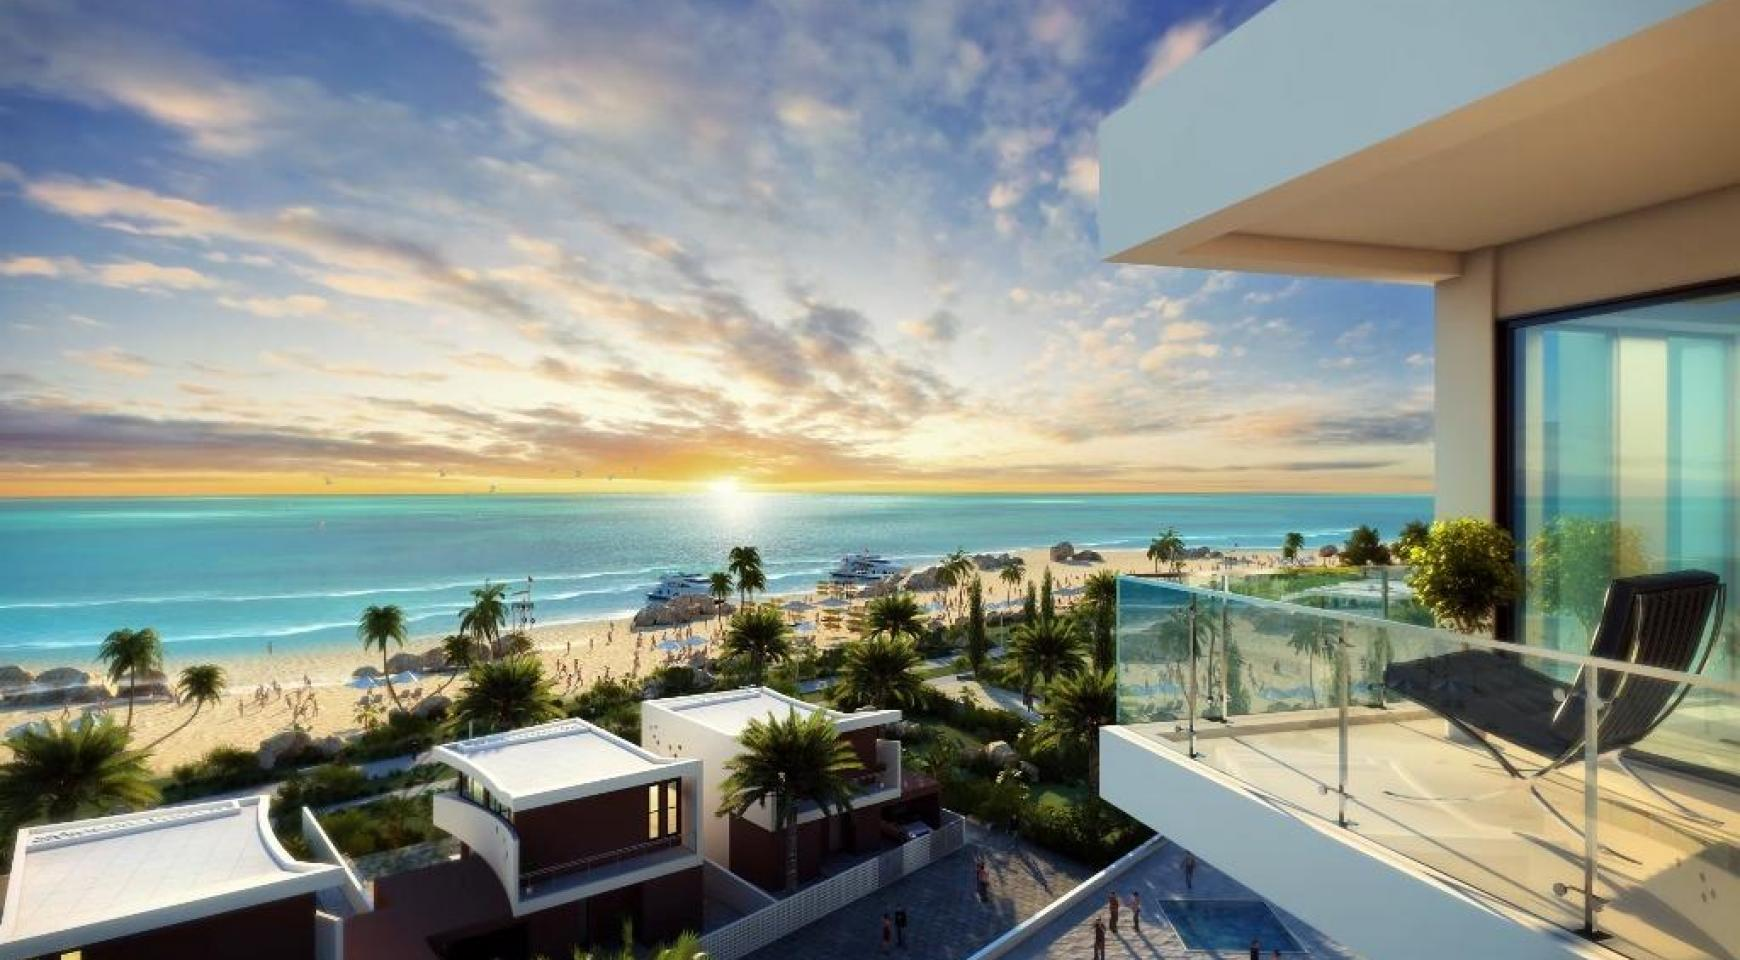 Contemporary 2 Bedroom Apartment in a New Complex by the Sea - 4